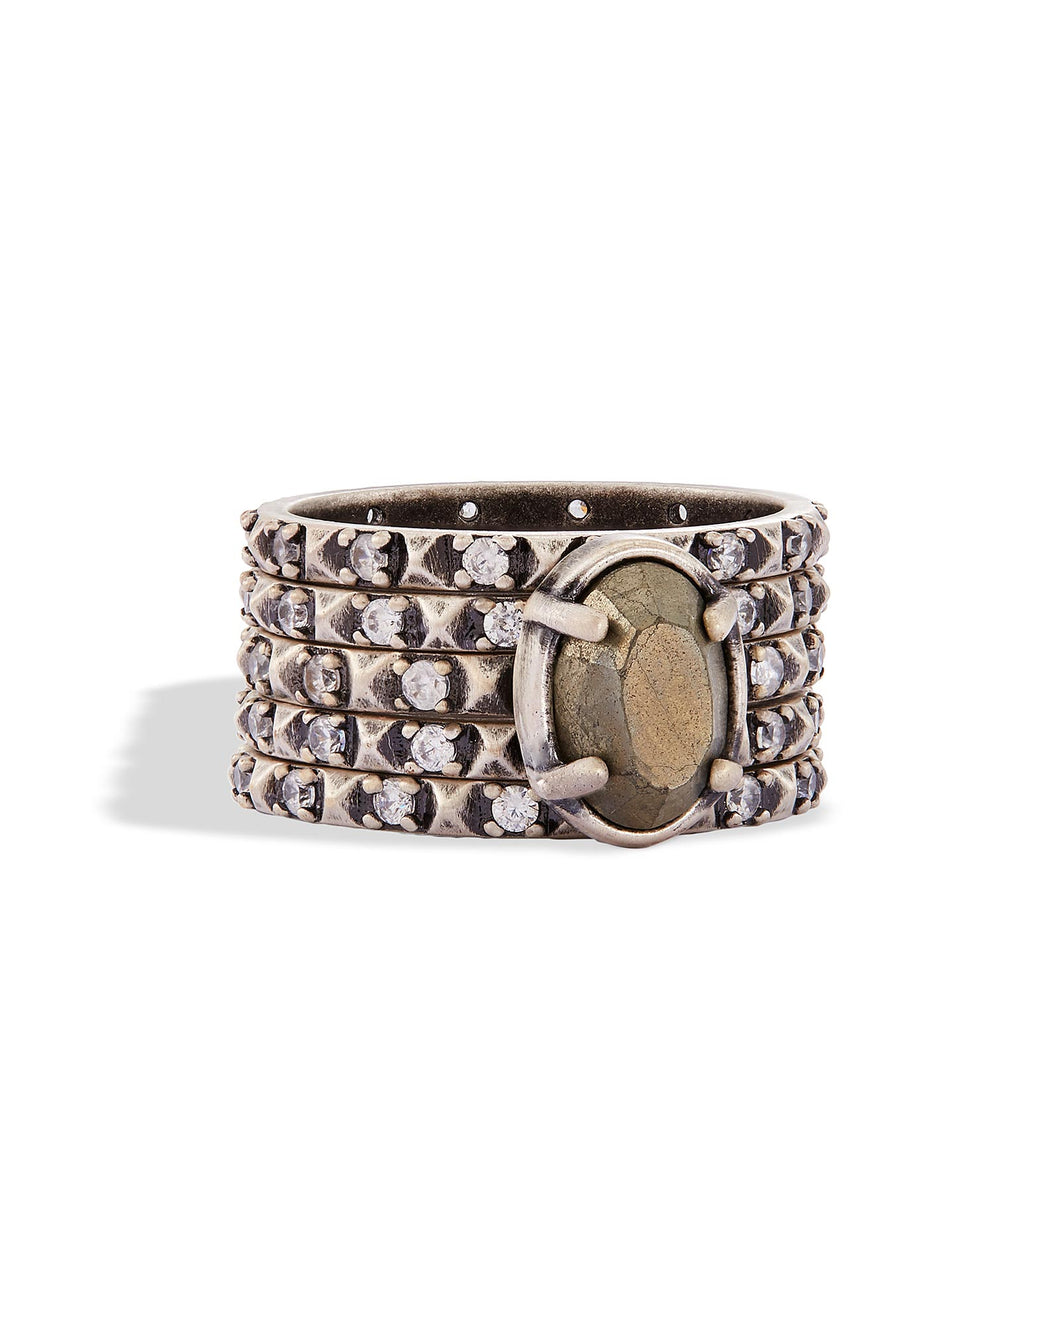 REYA STACKED STONE RINGS